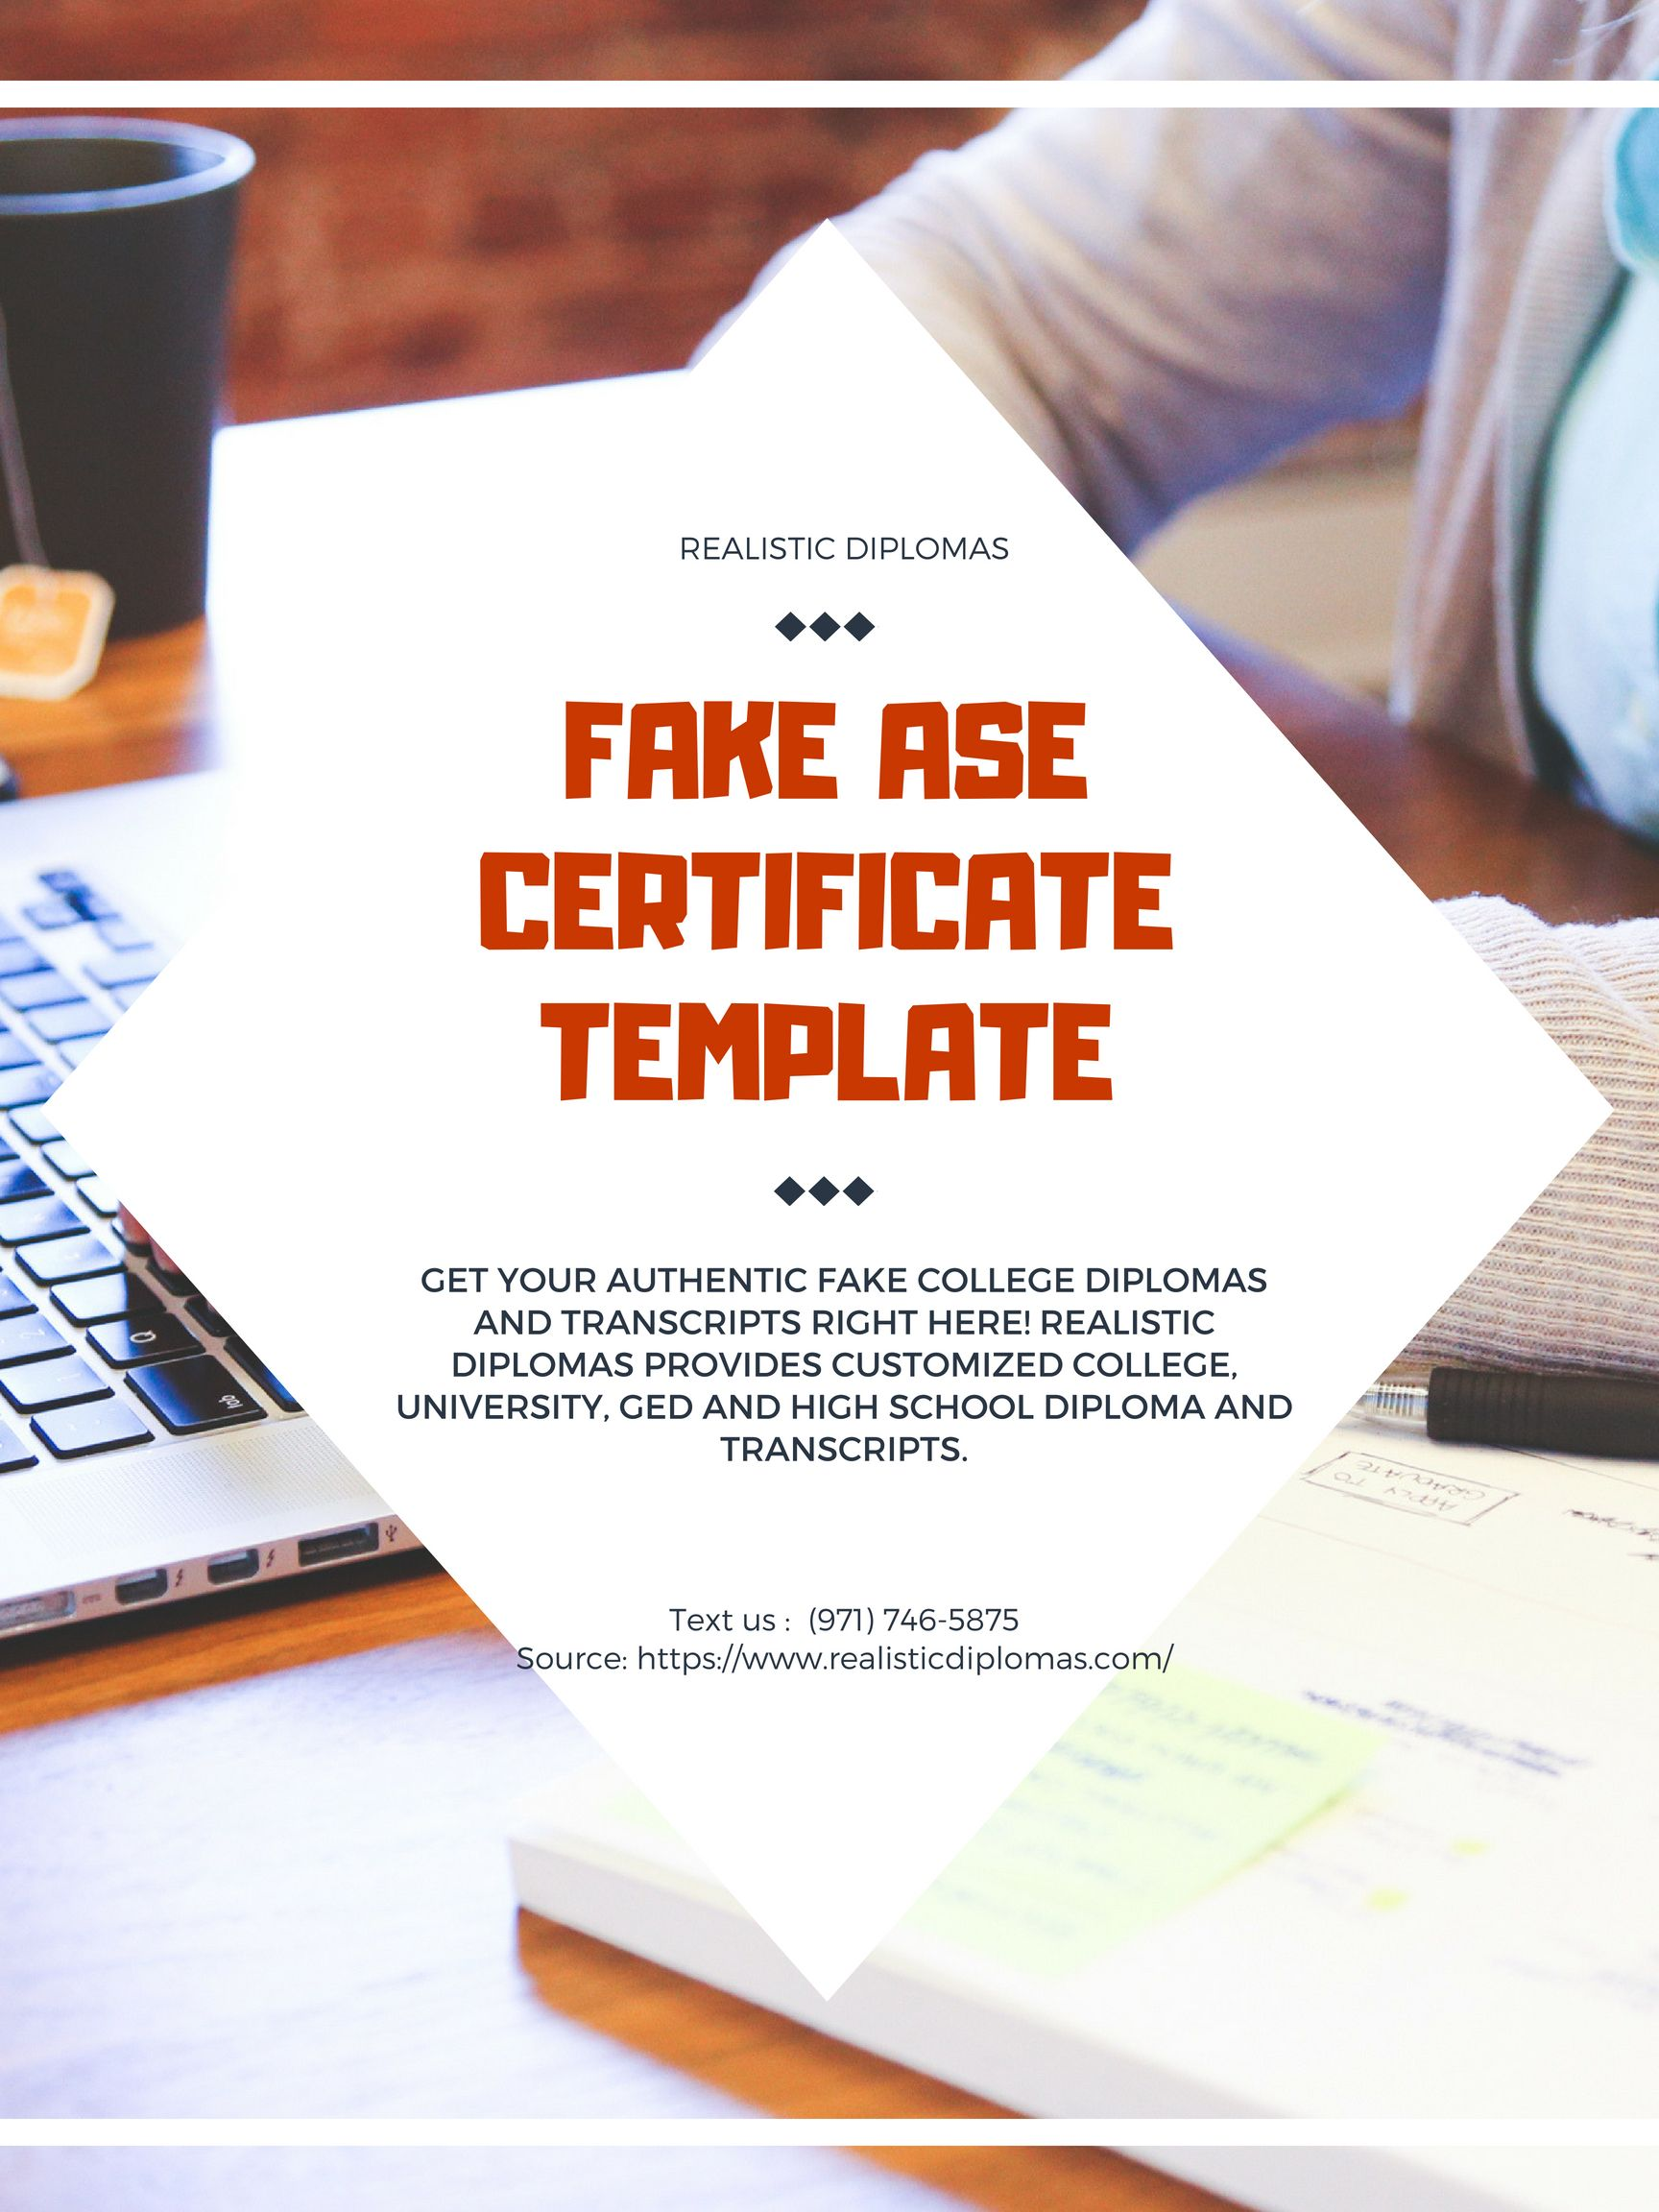 You Can Order Your Fake Ase Certificate Template On Realistic